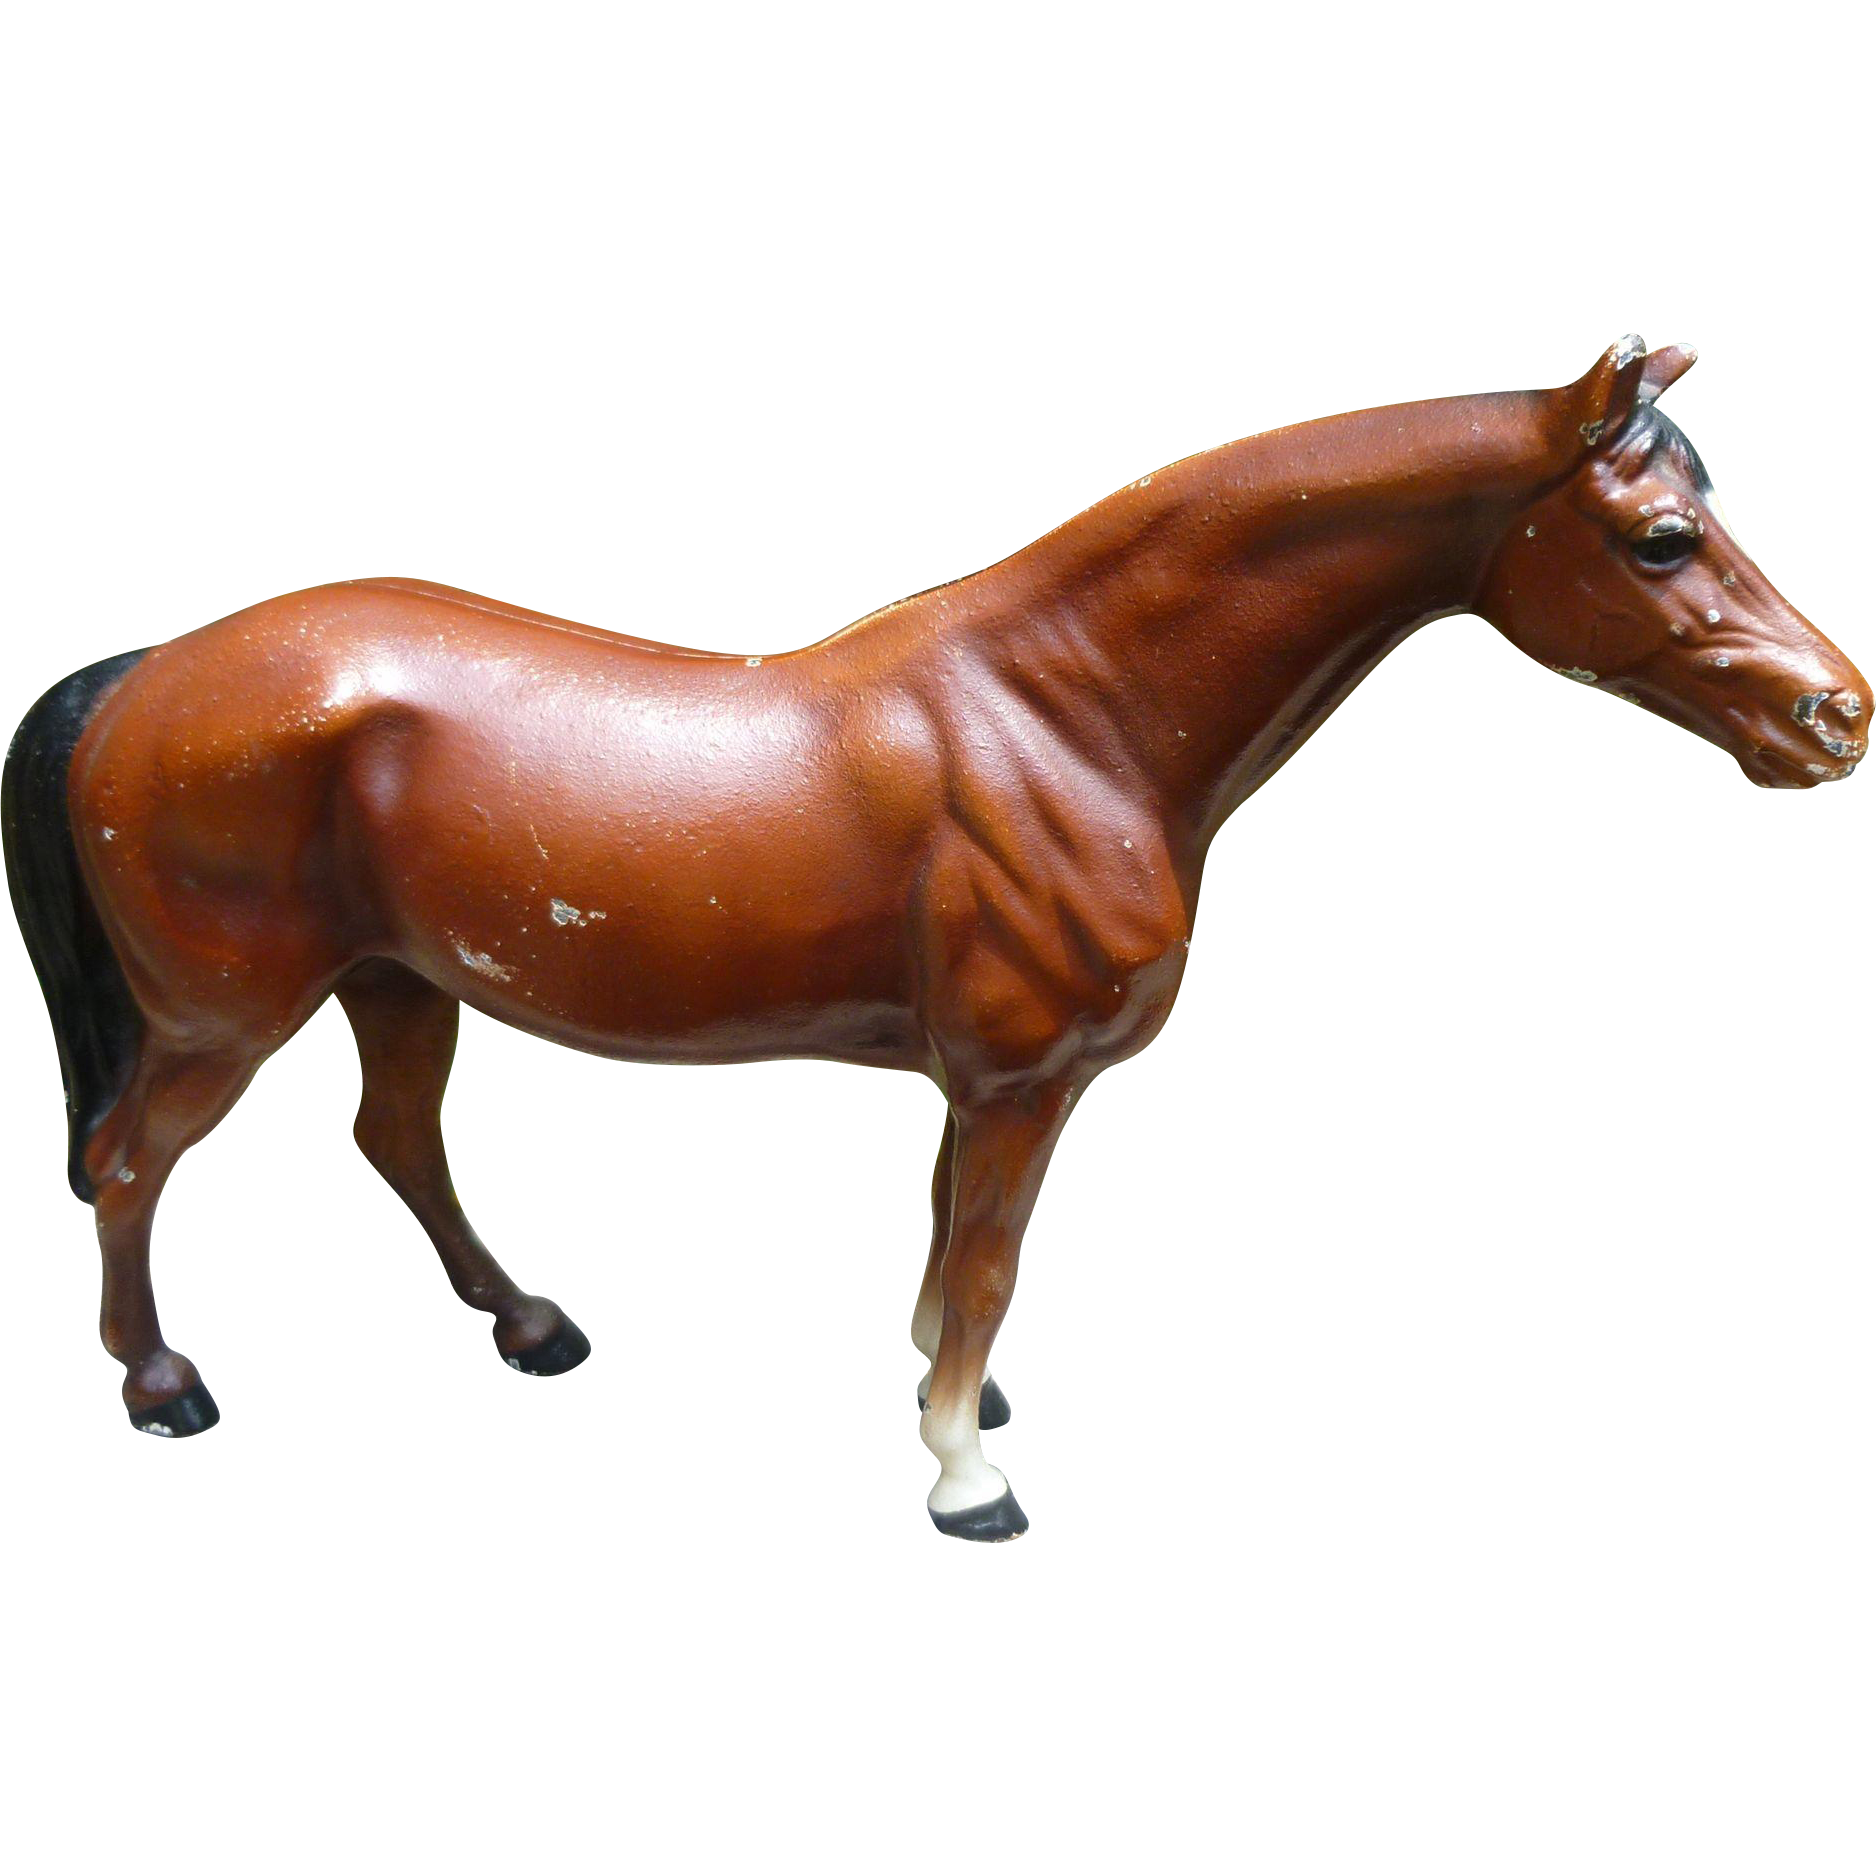 Vintage original hubley fox terrier 381 full figured large art statue - Hubley Cast Iron Horse Doorstop